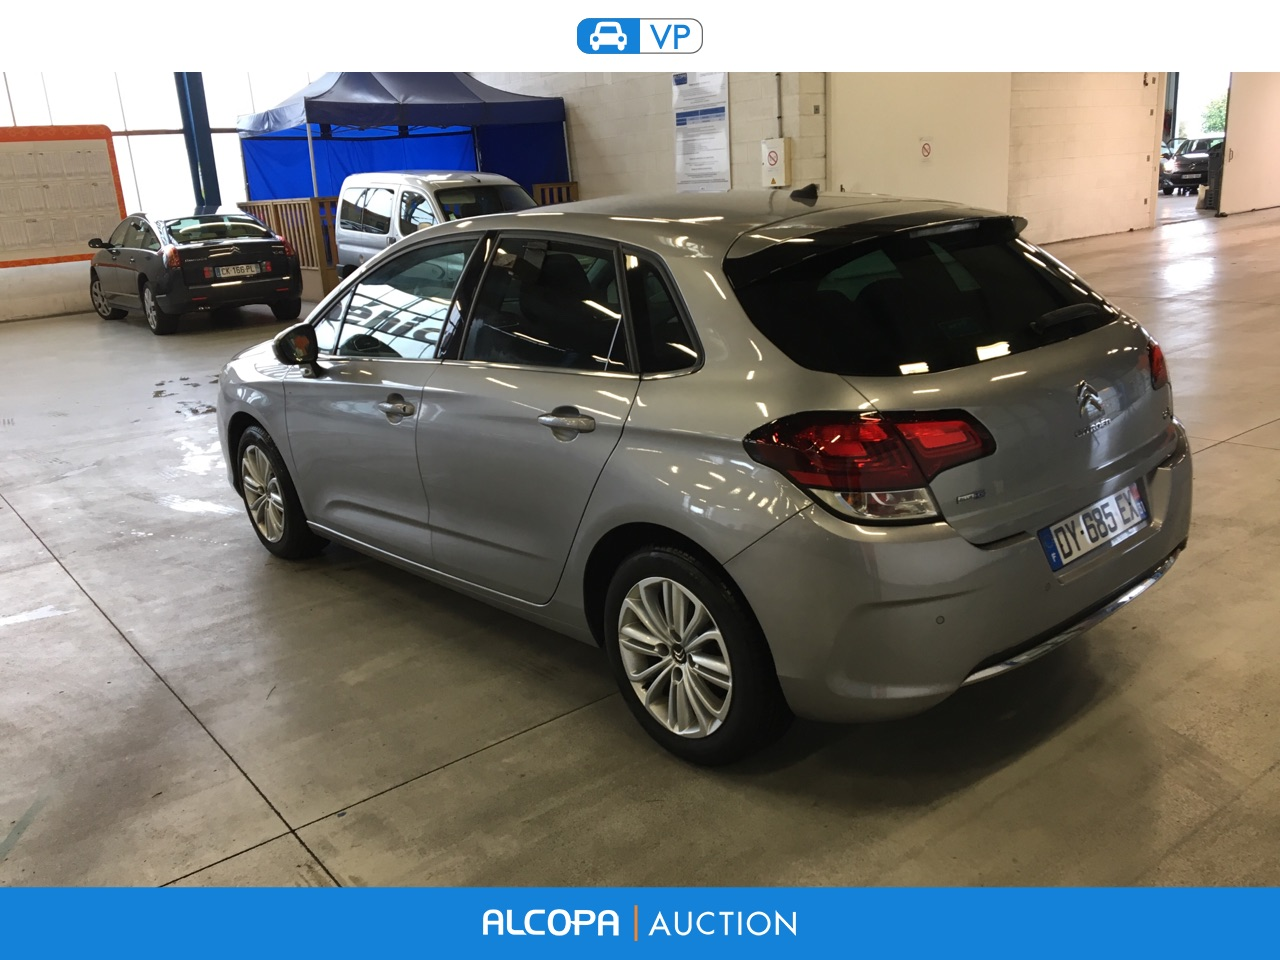 citroen c4 c4 bluehdi 100ch millenium business s s 86g rennes alcopa auction. Black Bedroom Furniture Sets. Home Design Ideas